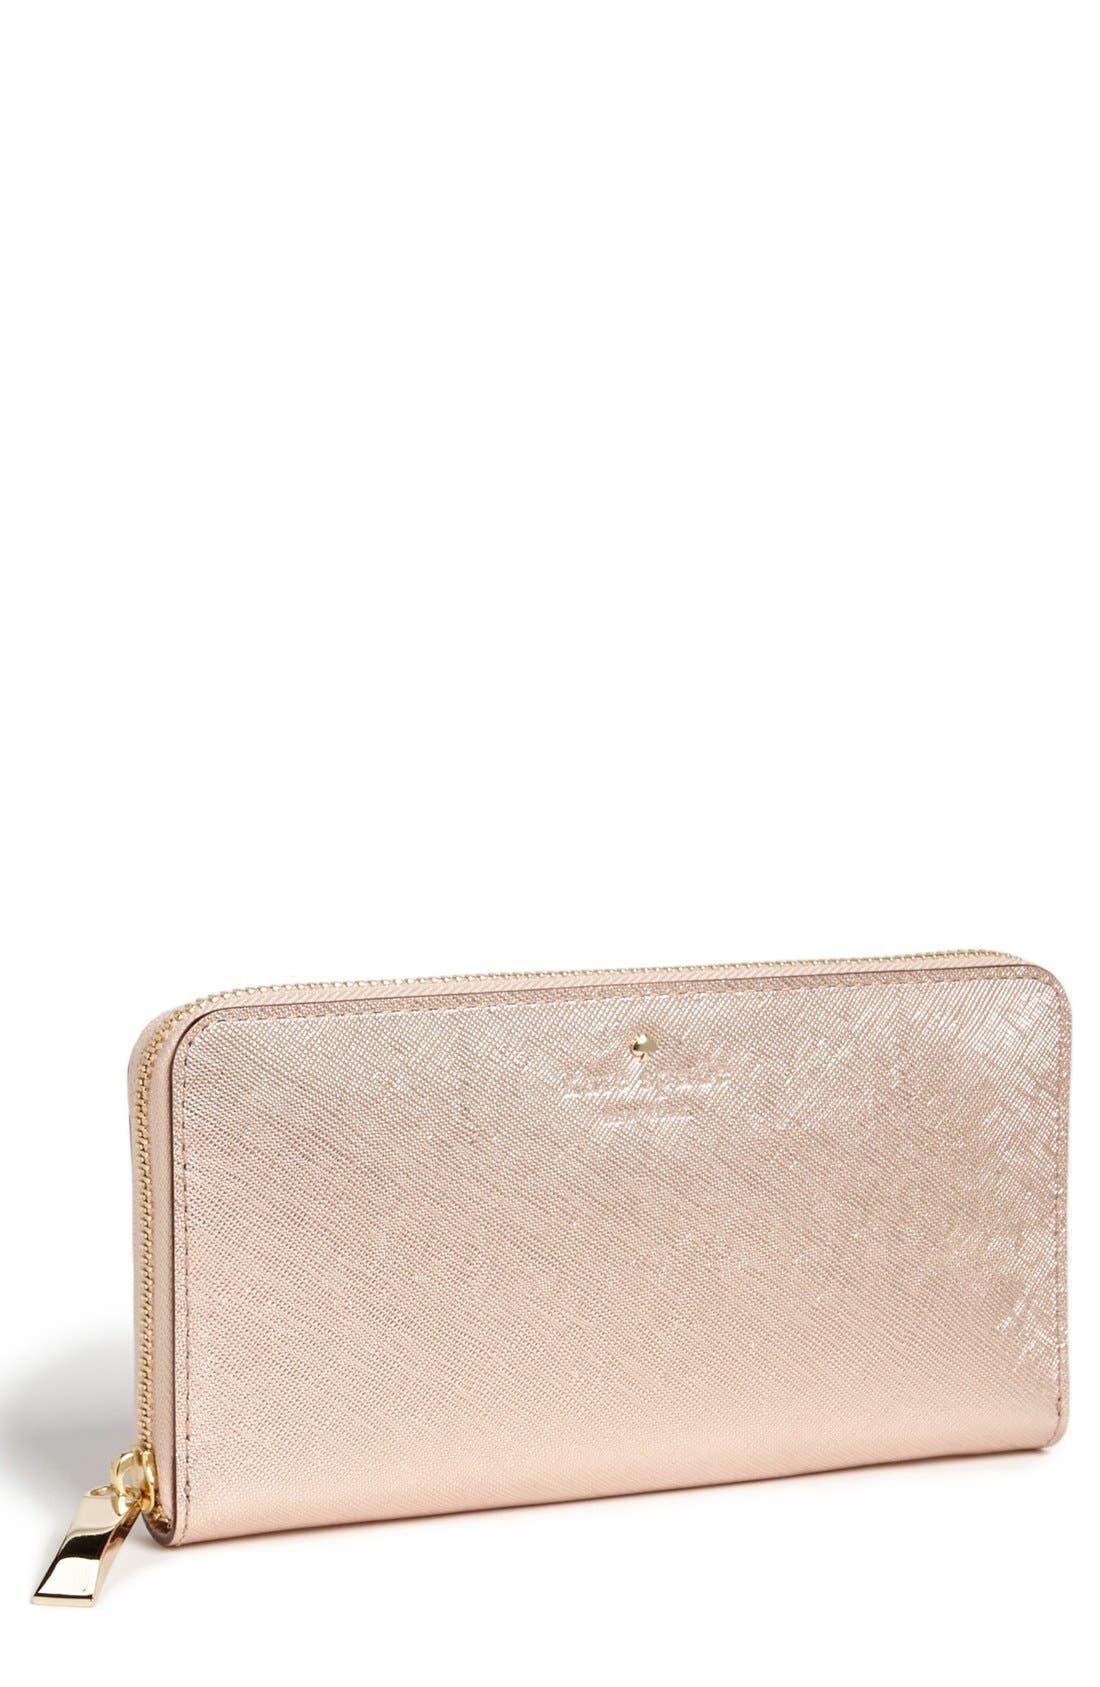 Alternate Image 1 Selected - kate spade new york 'cherry lane - lacey' wallet